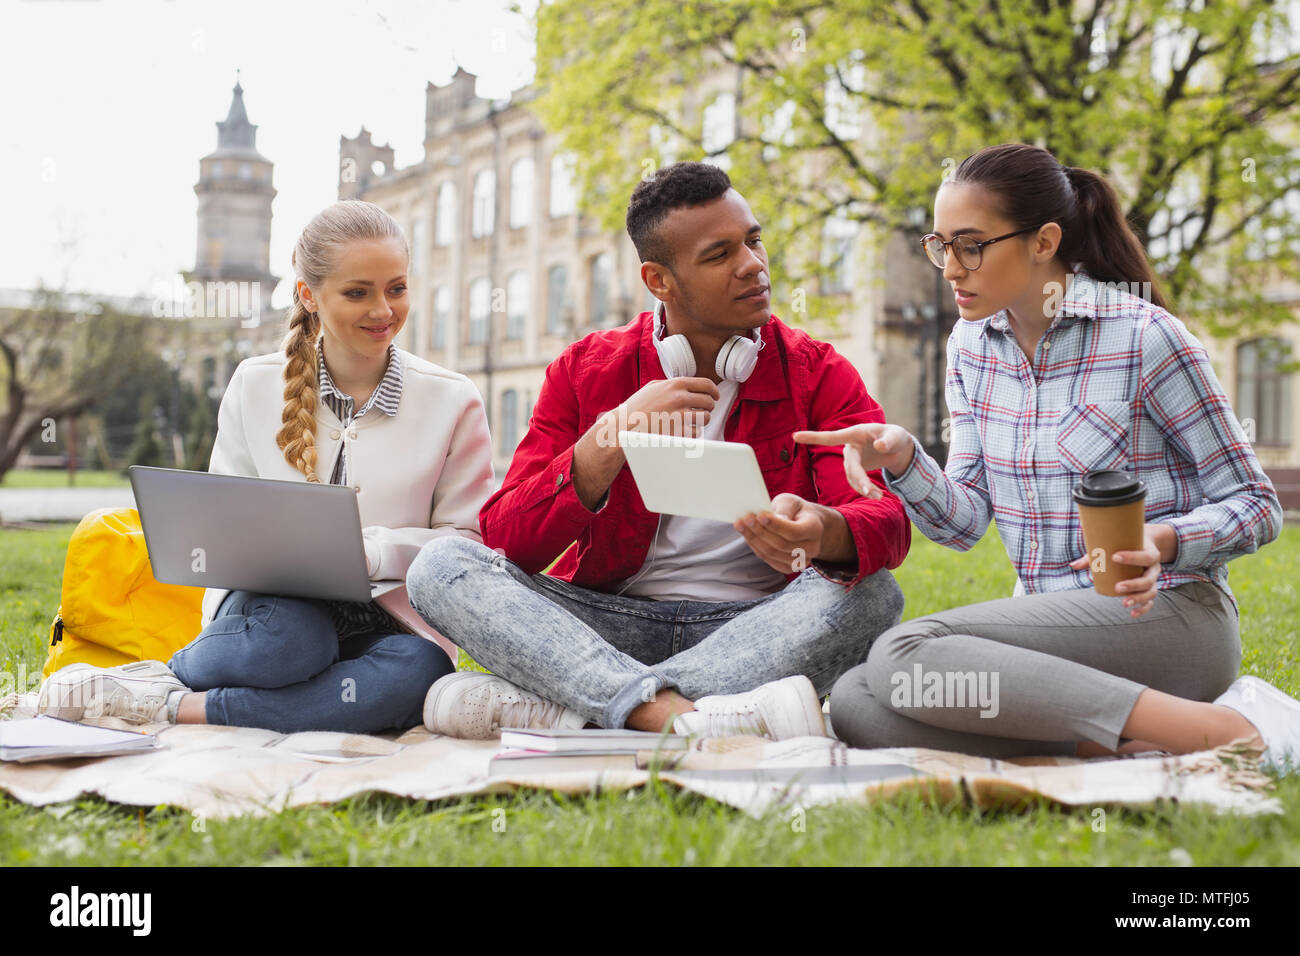 Future economists discussing their student life - Stock Image